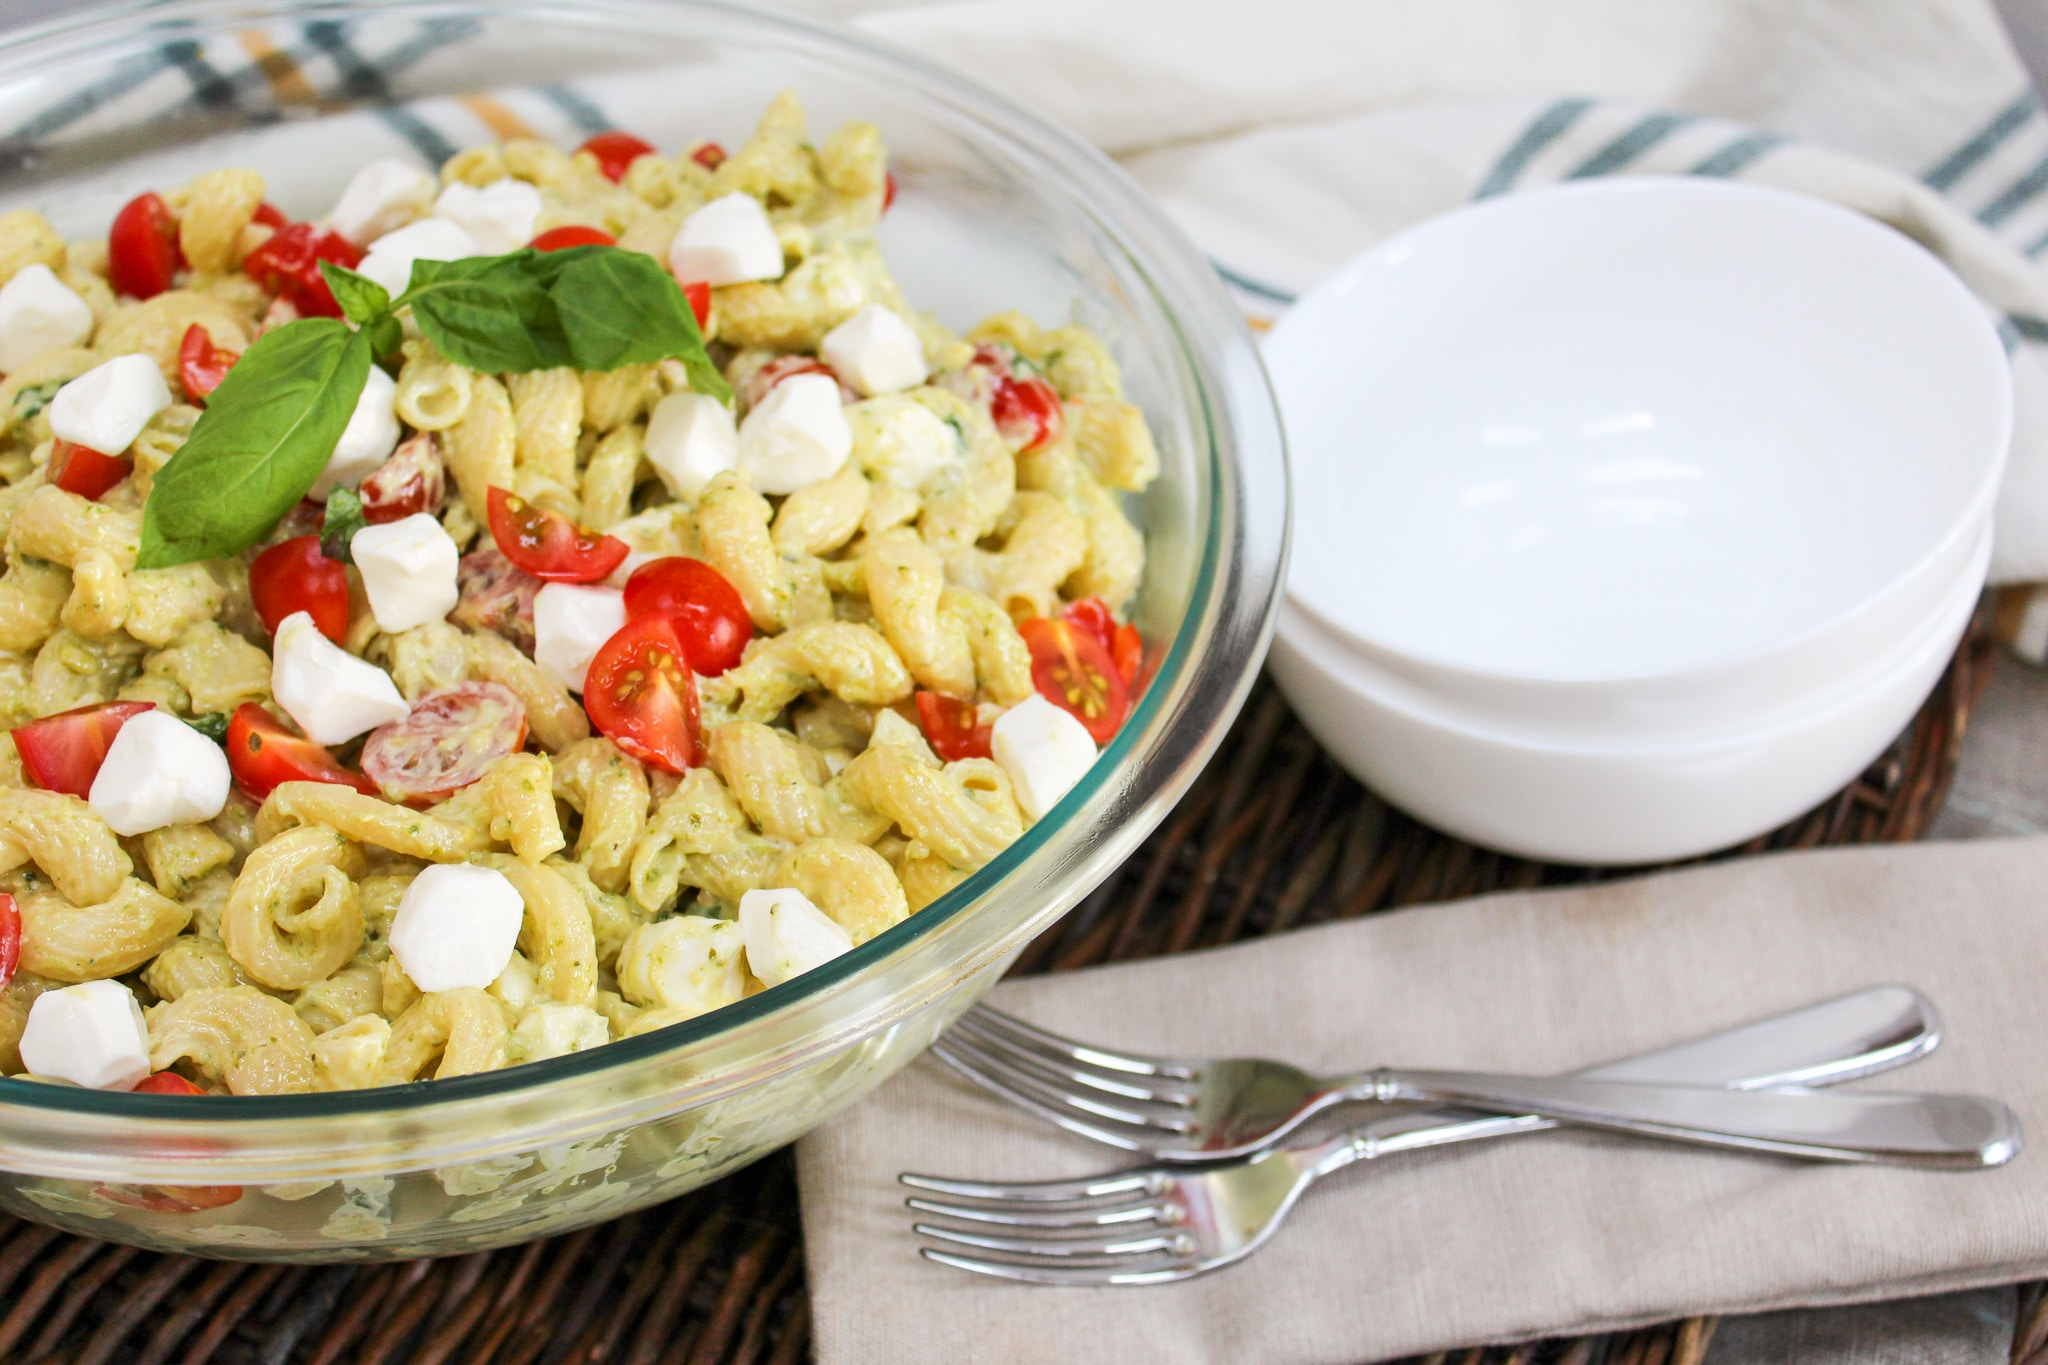 pasta salad plated in a glass bowl